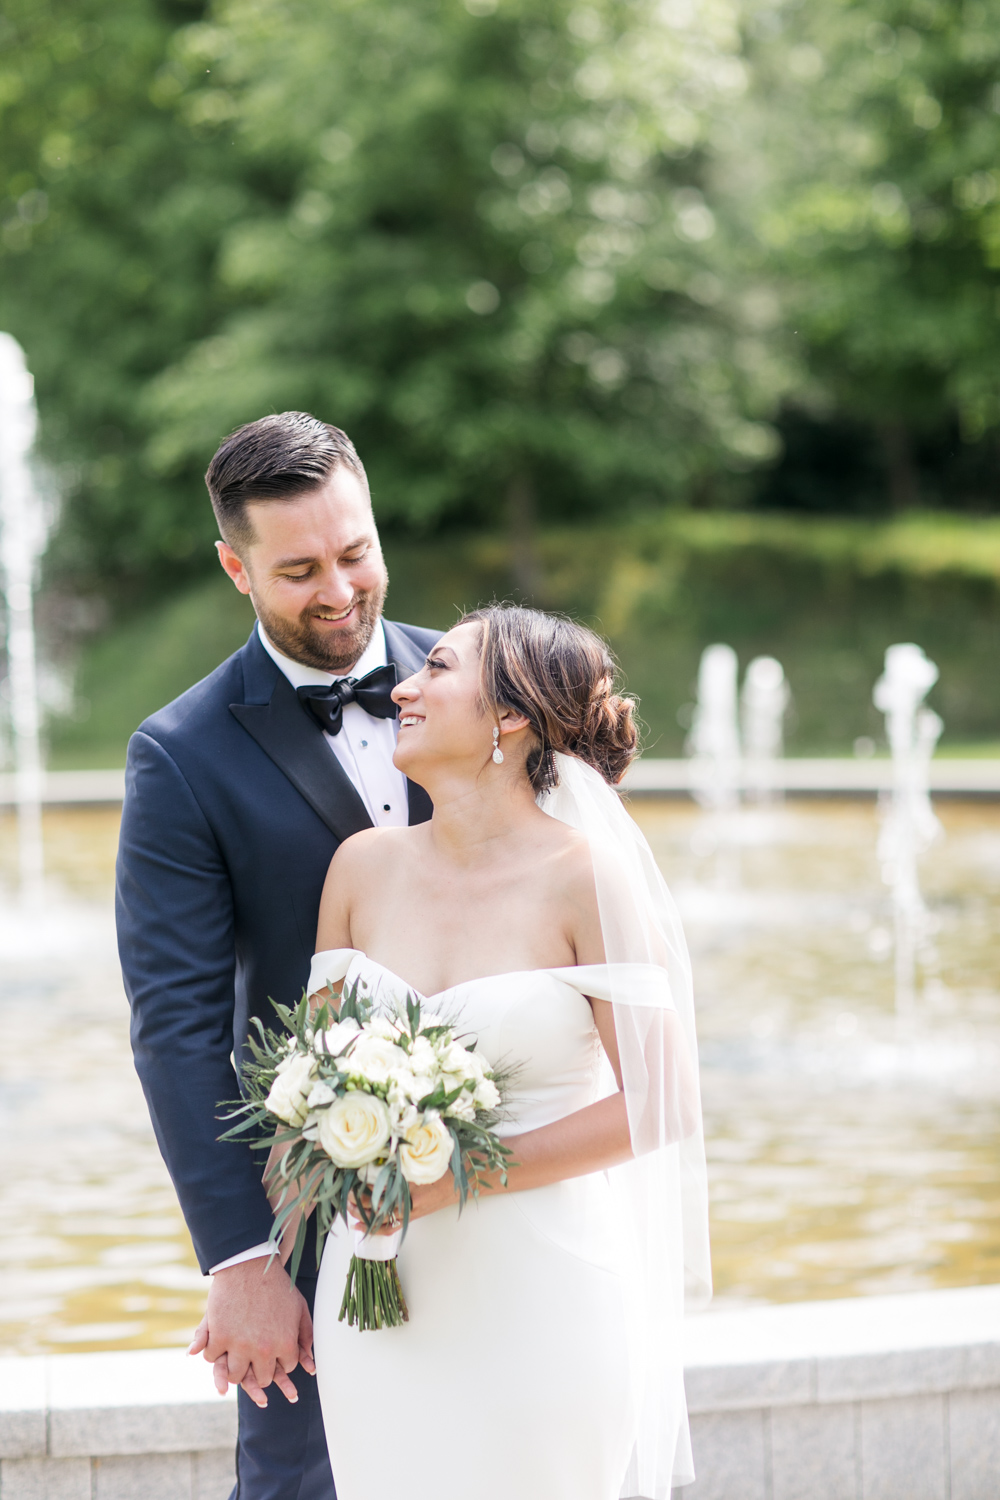 bride and groom looking at each other bride wearing an off shoulder white dress and groom wearing a black tie tux